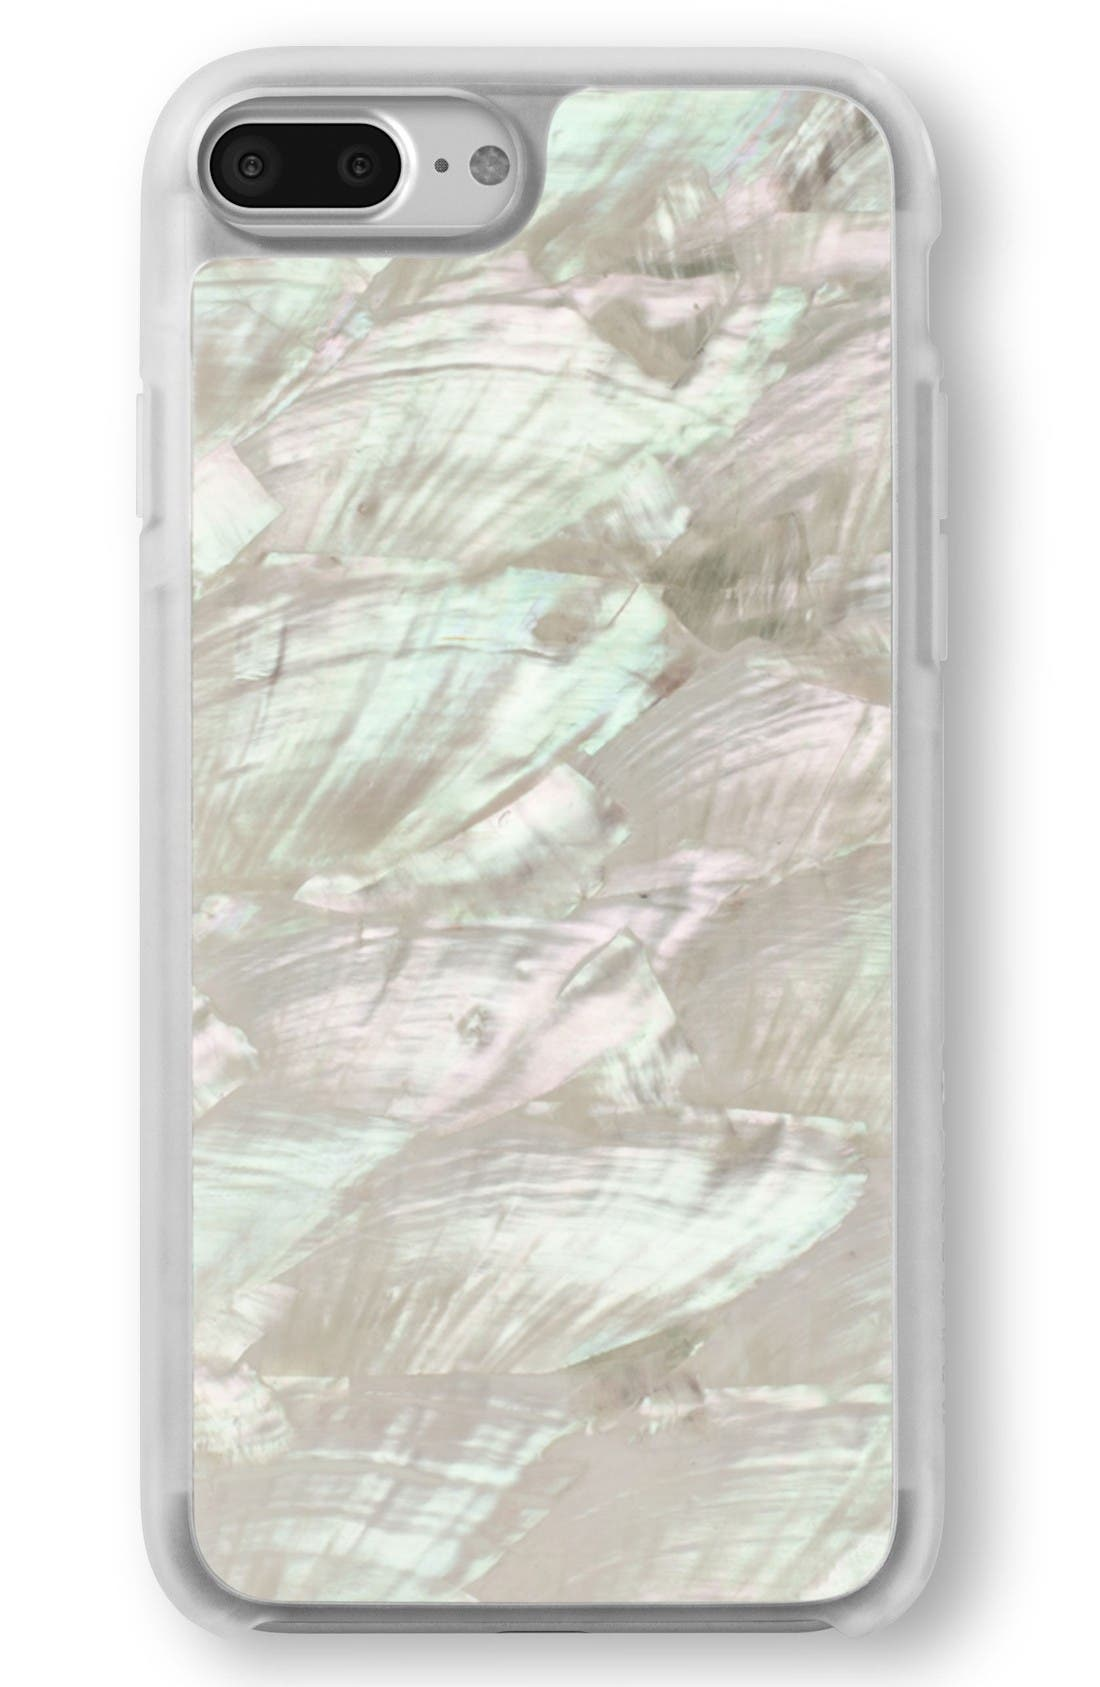 Alternate Image 1 Selected - Recover White Abalone iPhone 6/7 & 6/7 Plus Case